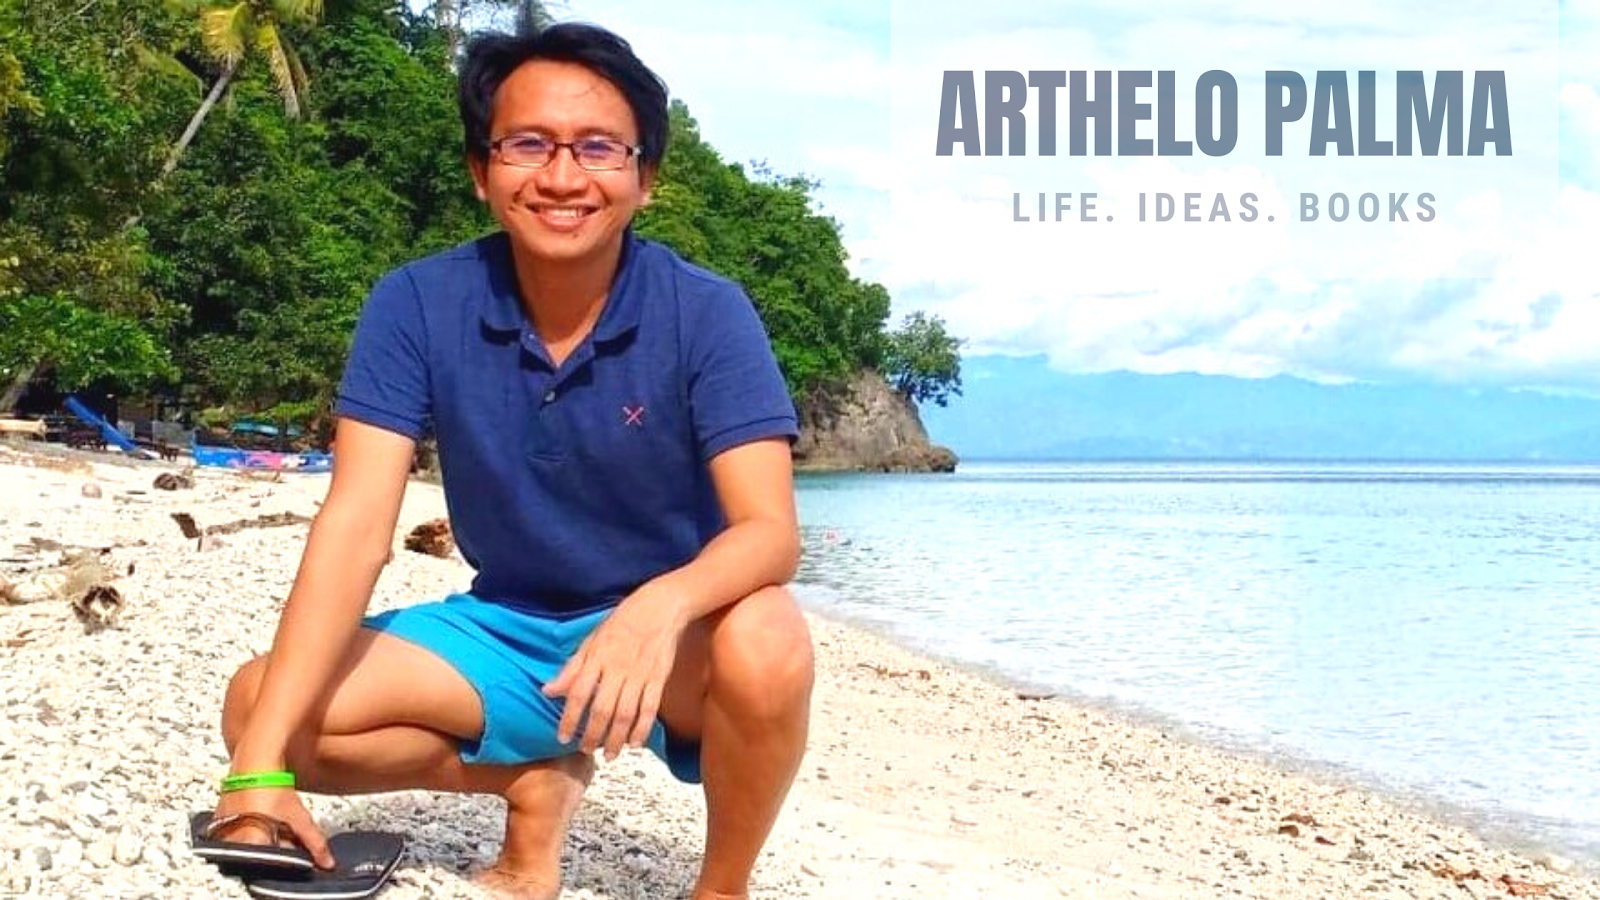 ARTHELO PALMA: Life. Ideas. Books.